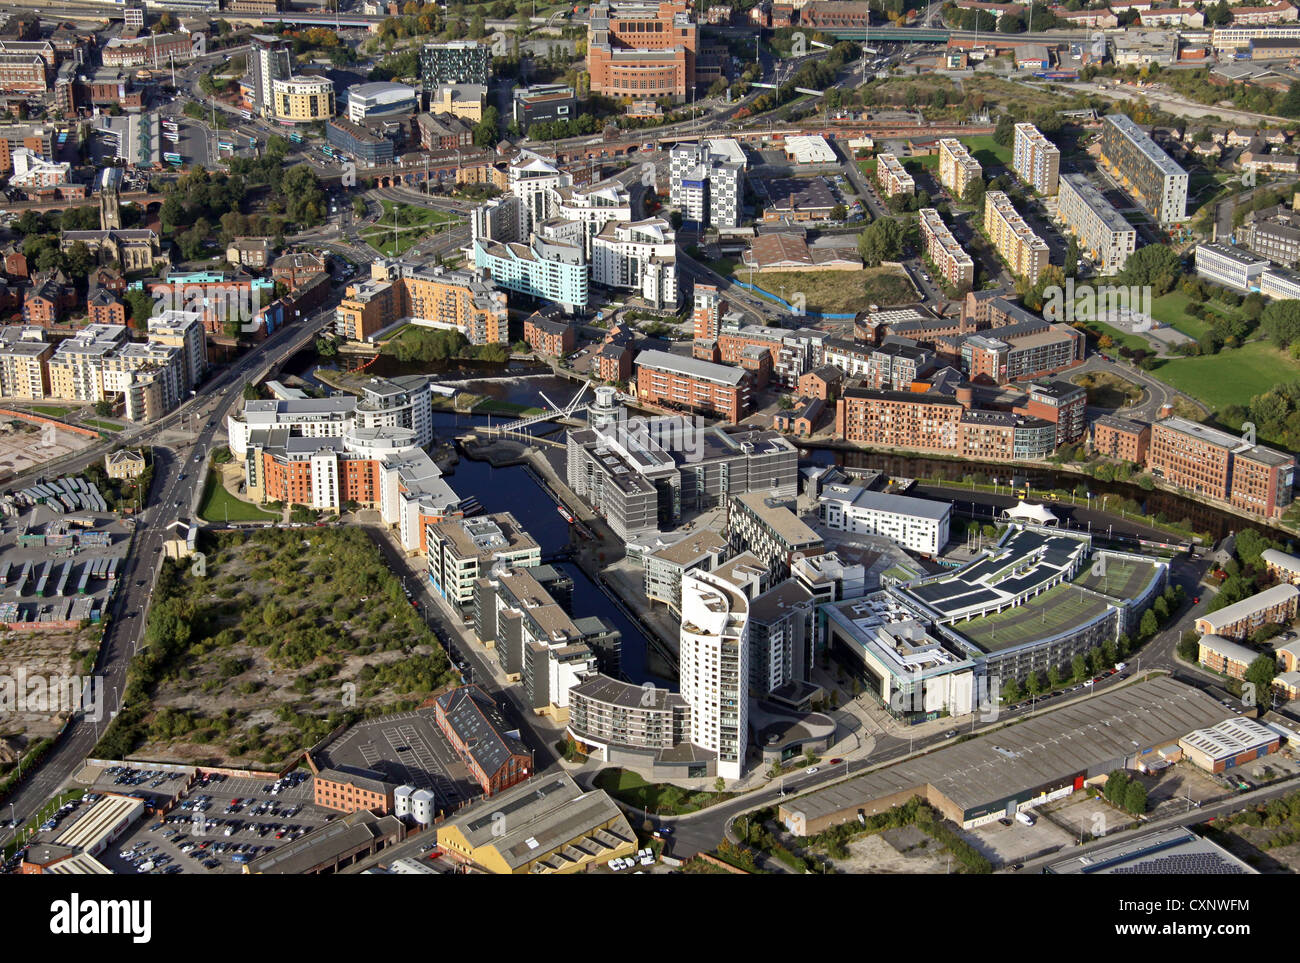 aerial view of Clarence Dock in Leeds - Stock Image